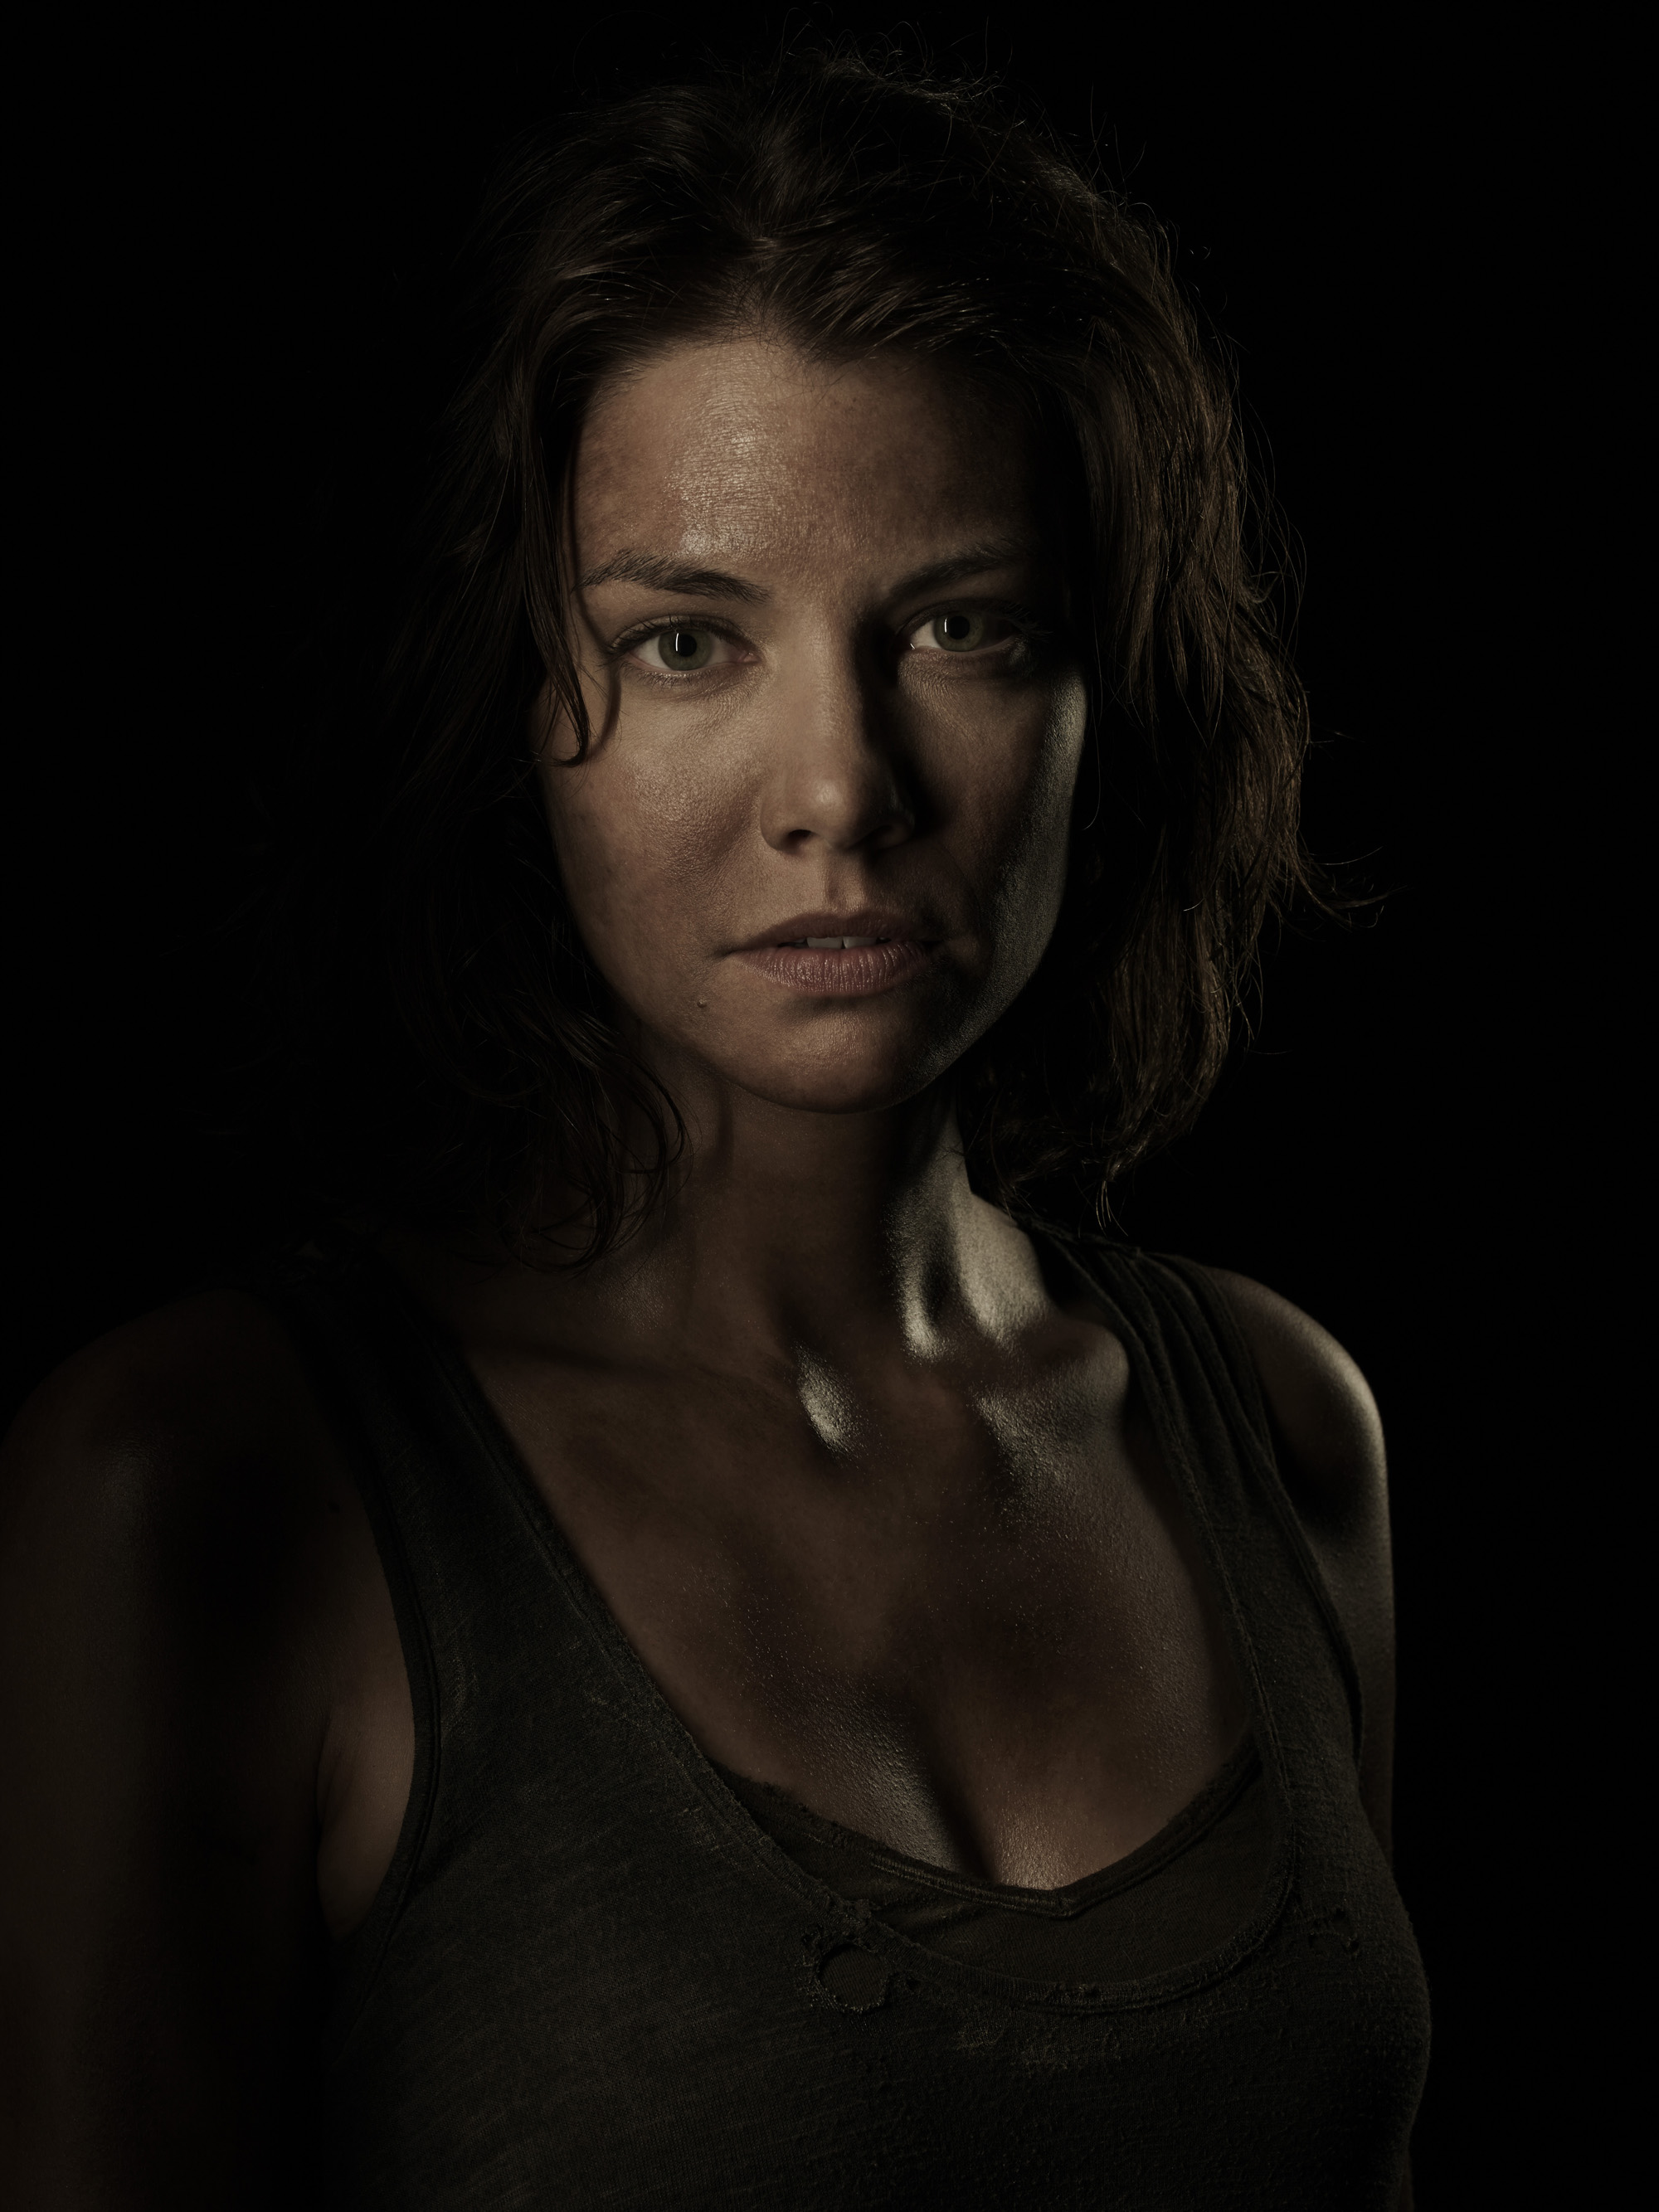 Lauren cohan walking dead 2